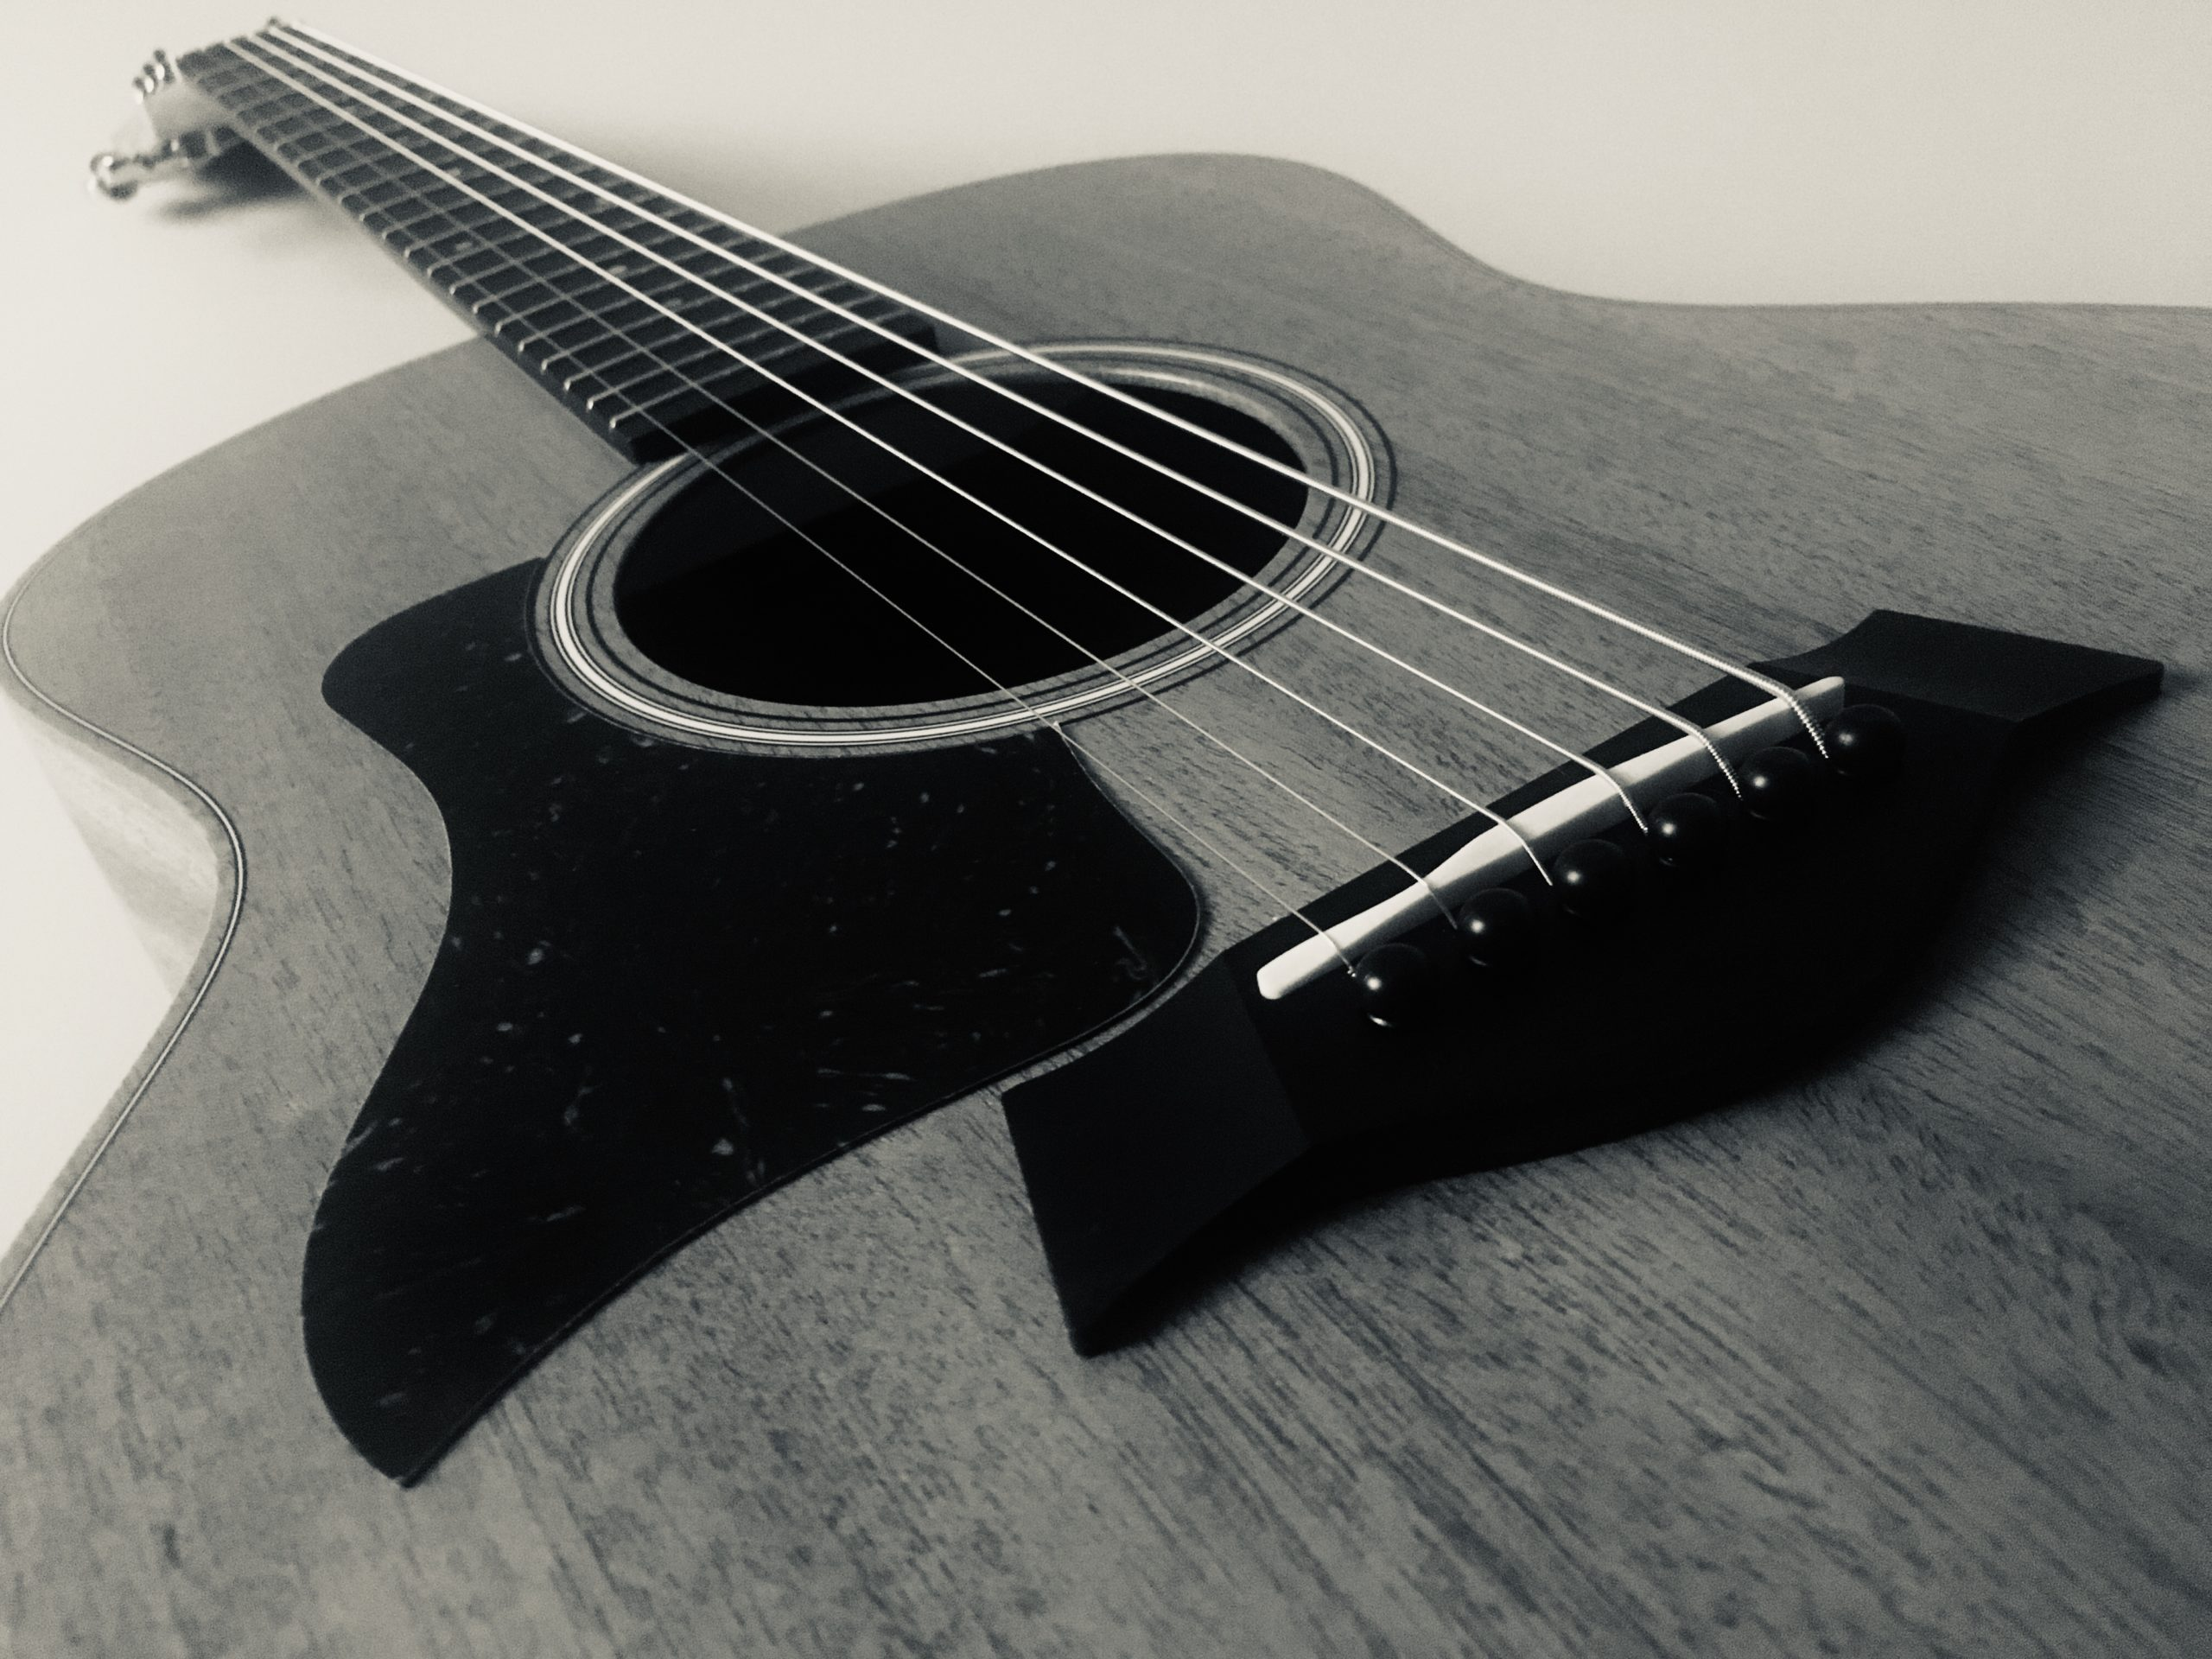 Sarah's been increasing her knowledge of all her creative pursuits. In the photo is Sarah's new guitar. A beautiful mahogany topped Taylor GS Mini.